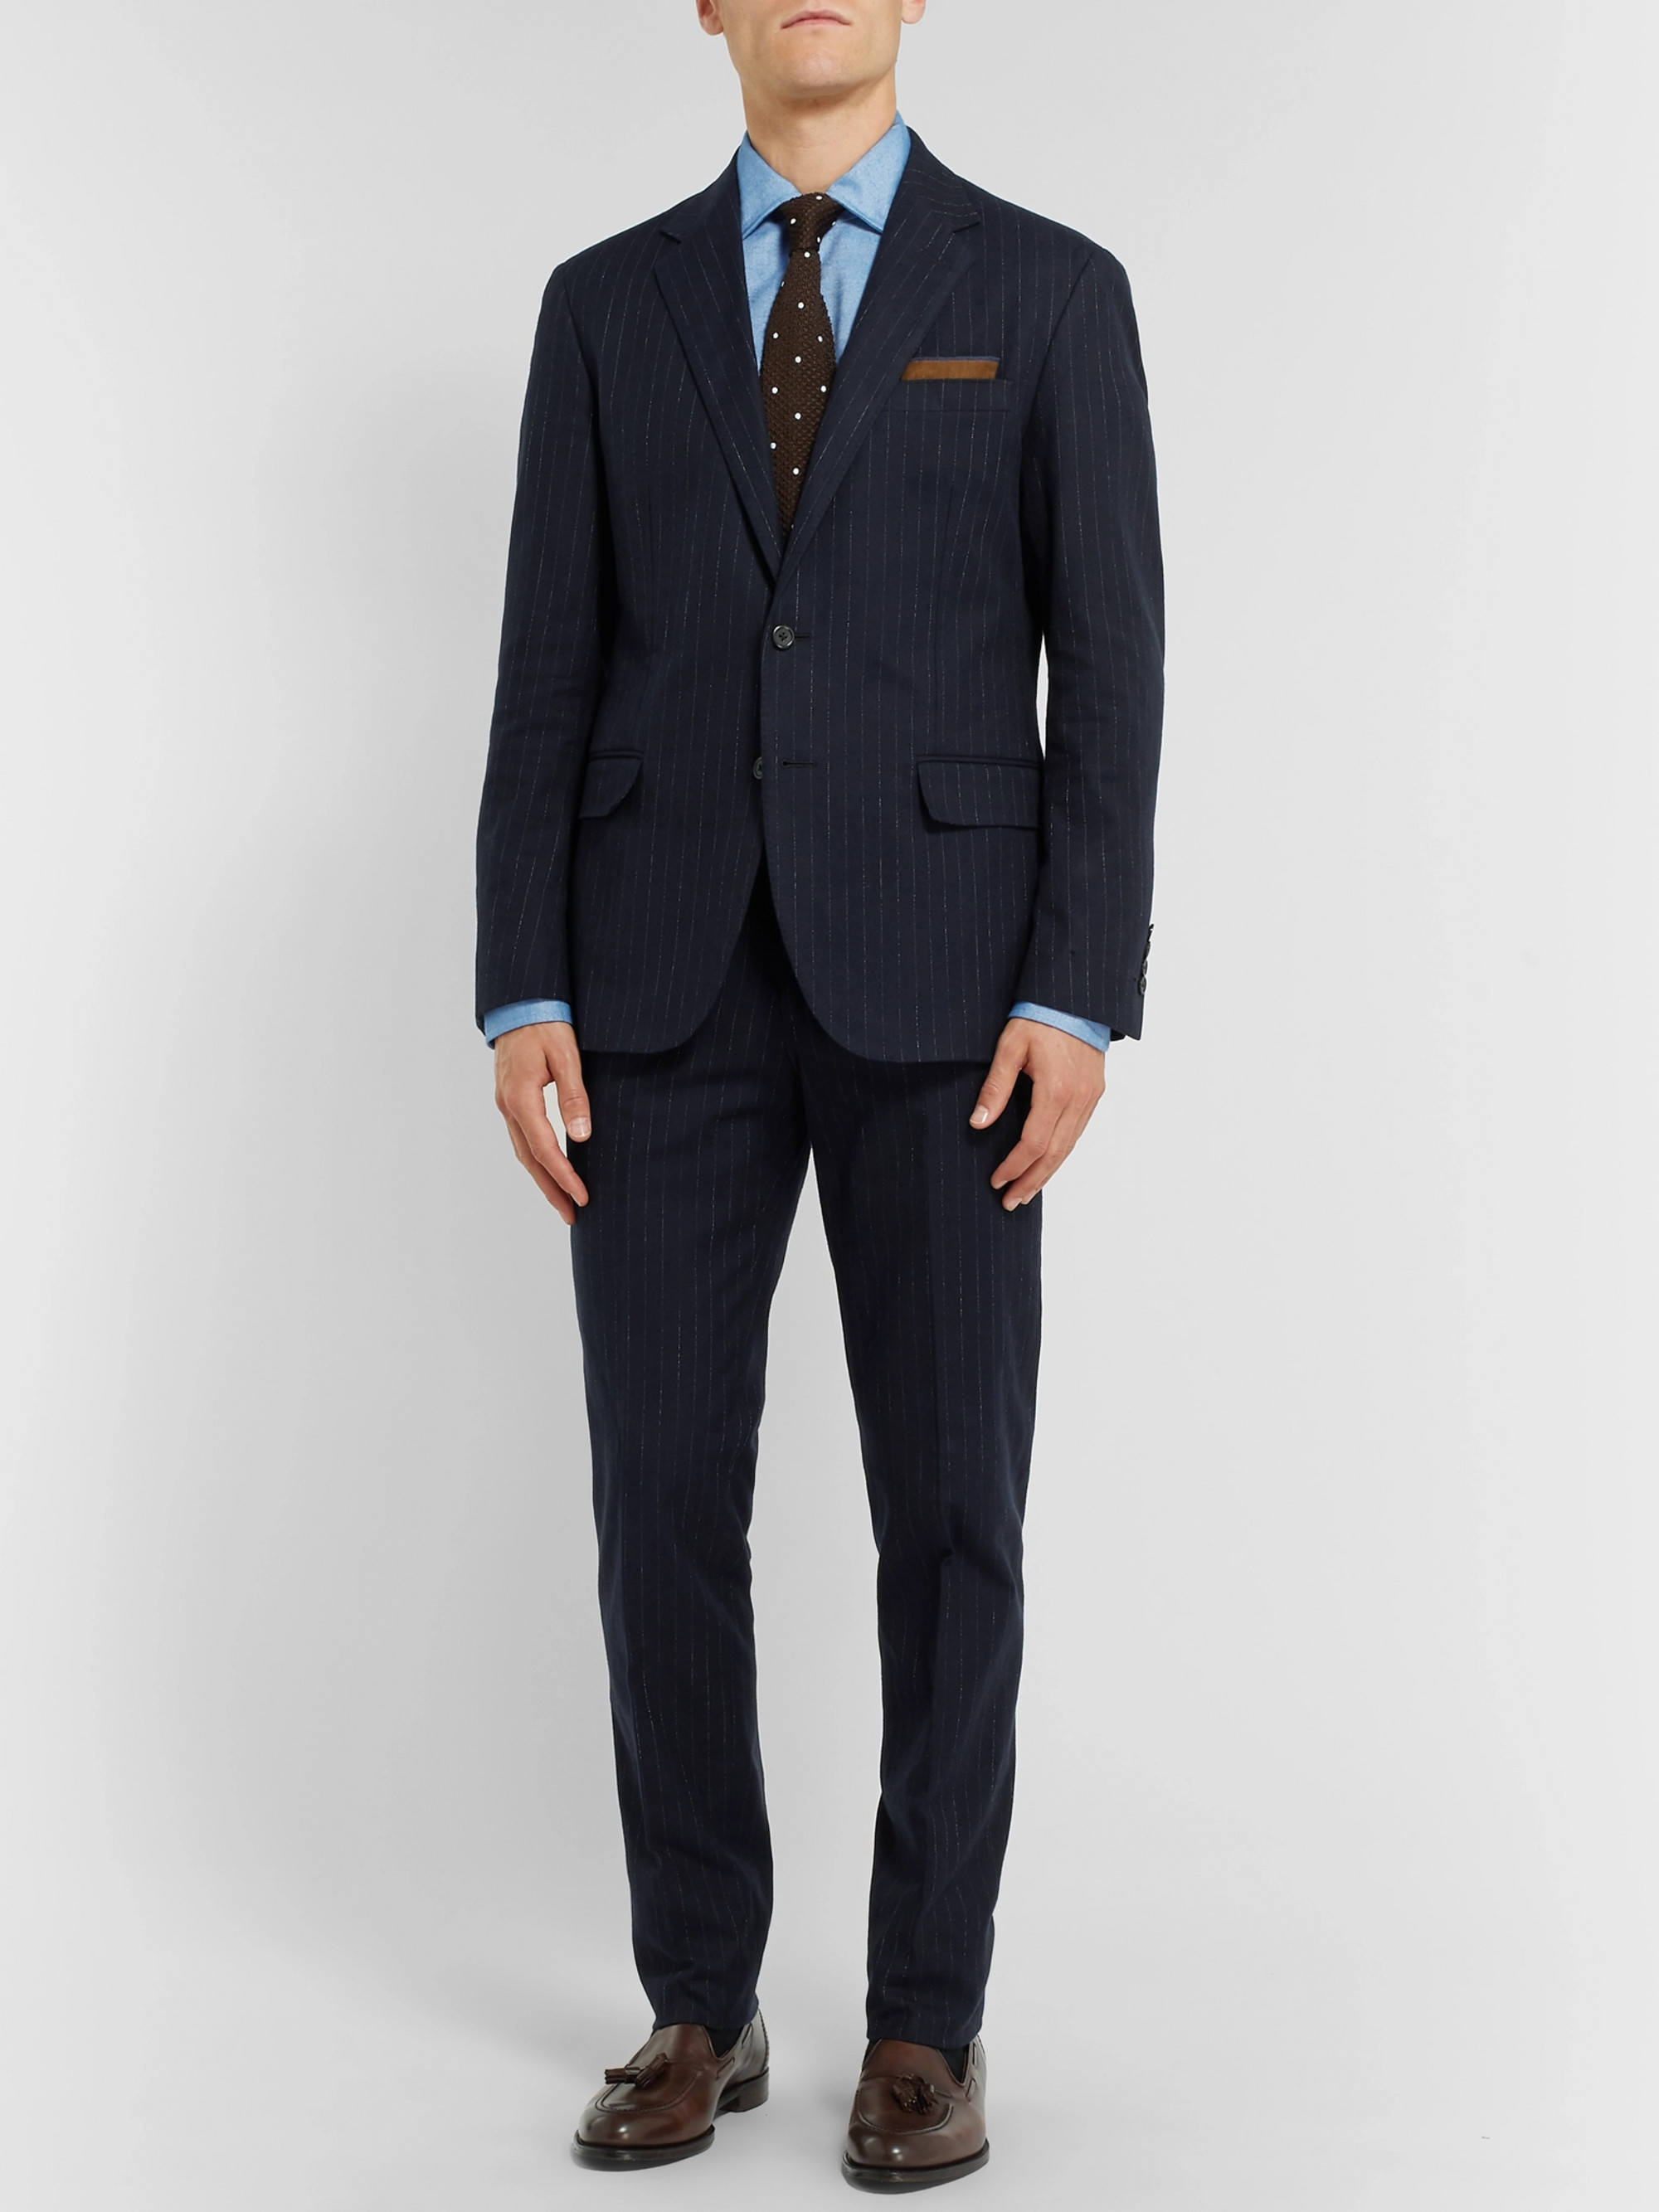 Polo Ralph Lauren Navy Slim-Fit Pinstriped Stretch Cotton and Wool-Blend Suit Jacket